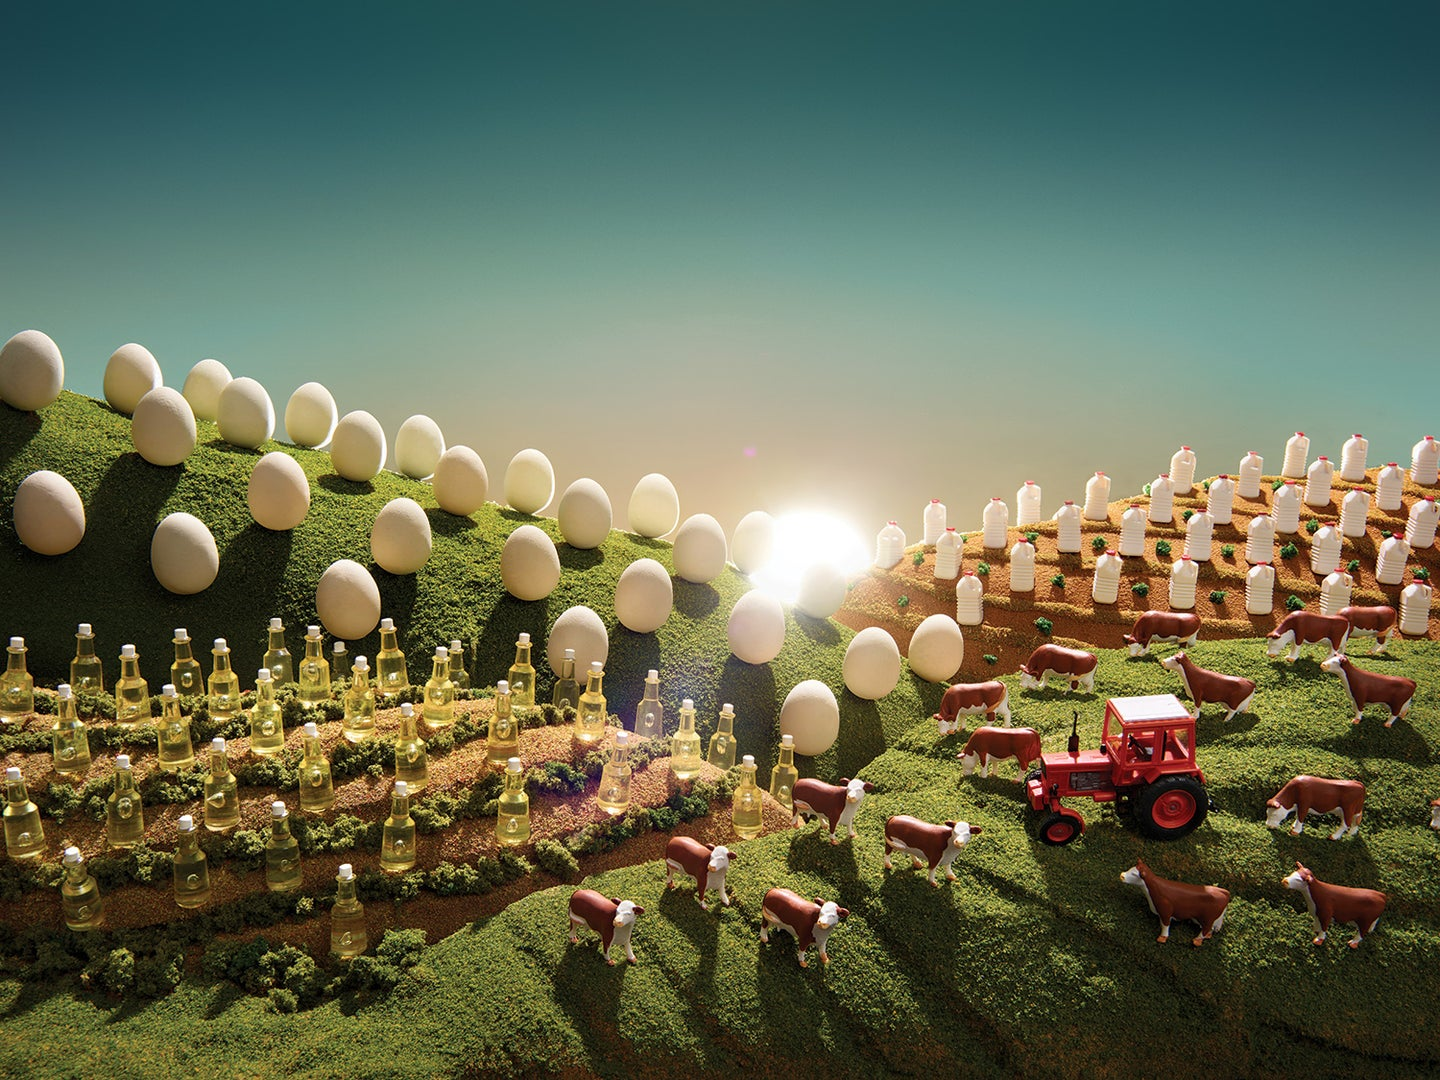 Can industrial farming be a force for good?